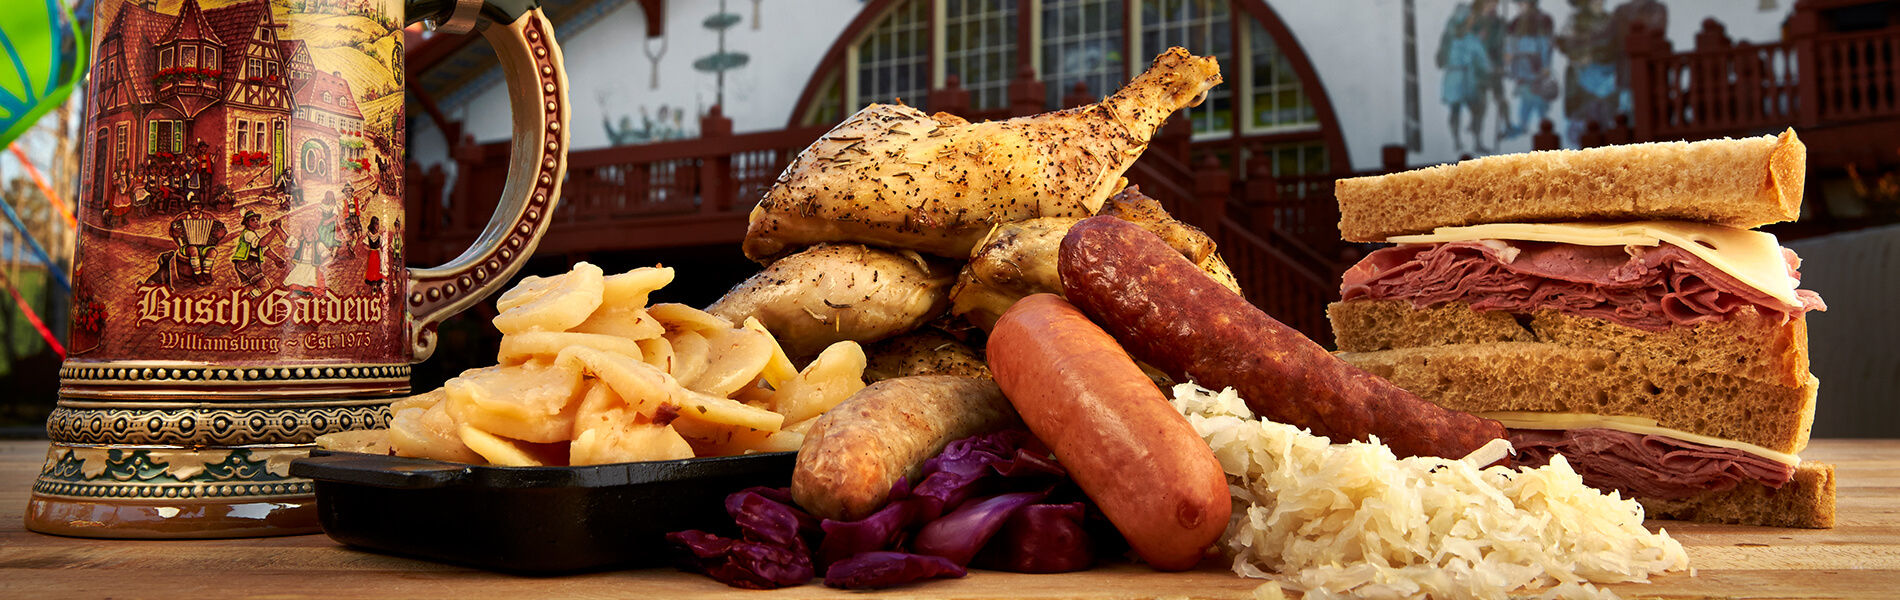 Enjoy traditional German foods as well as sandwiches, pizza, salads and more.